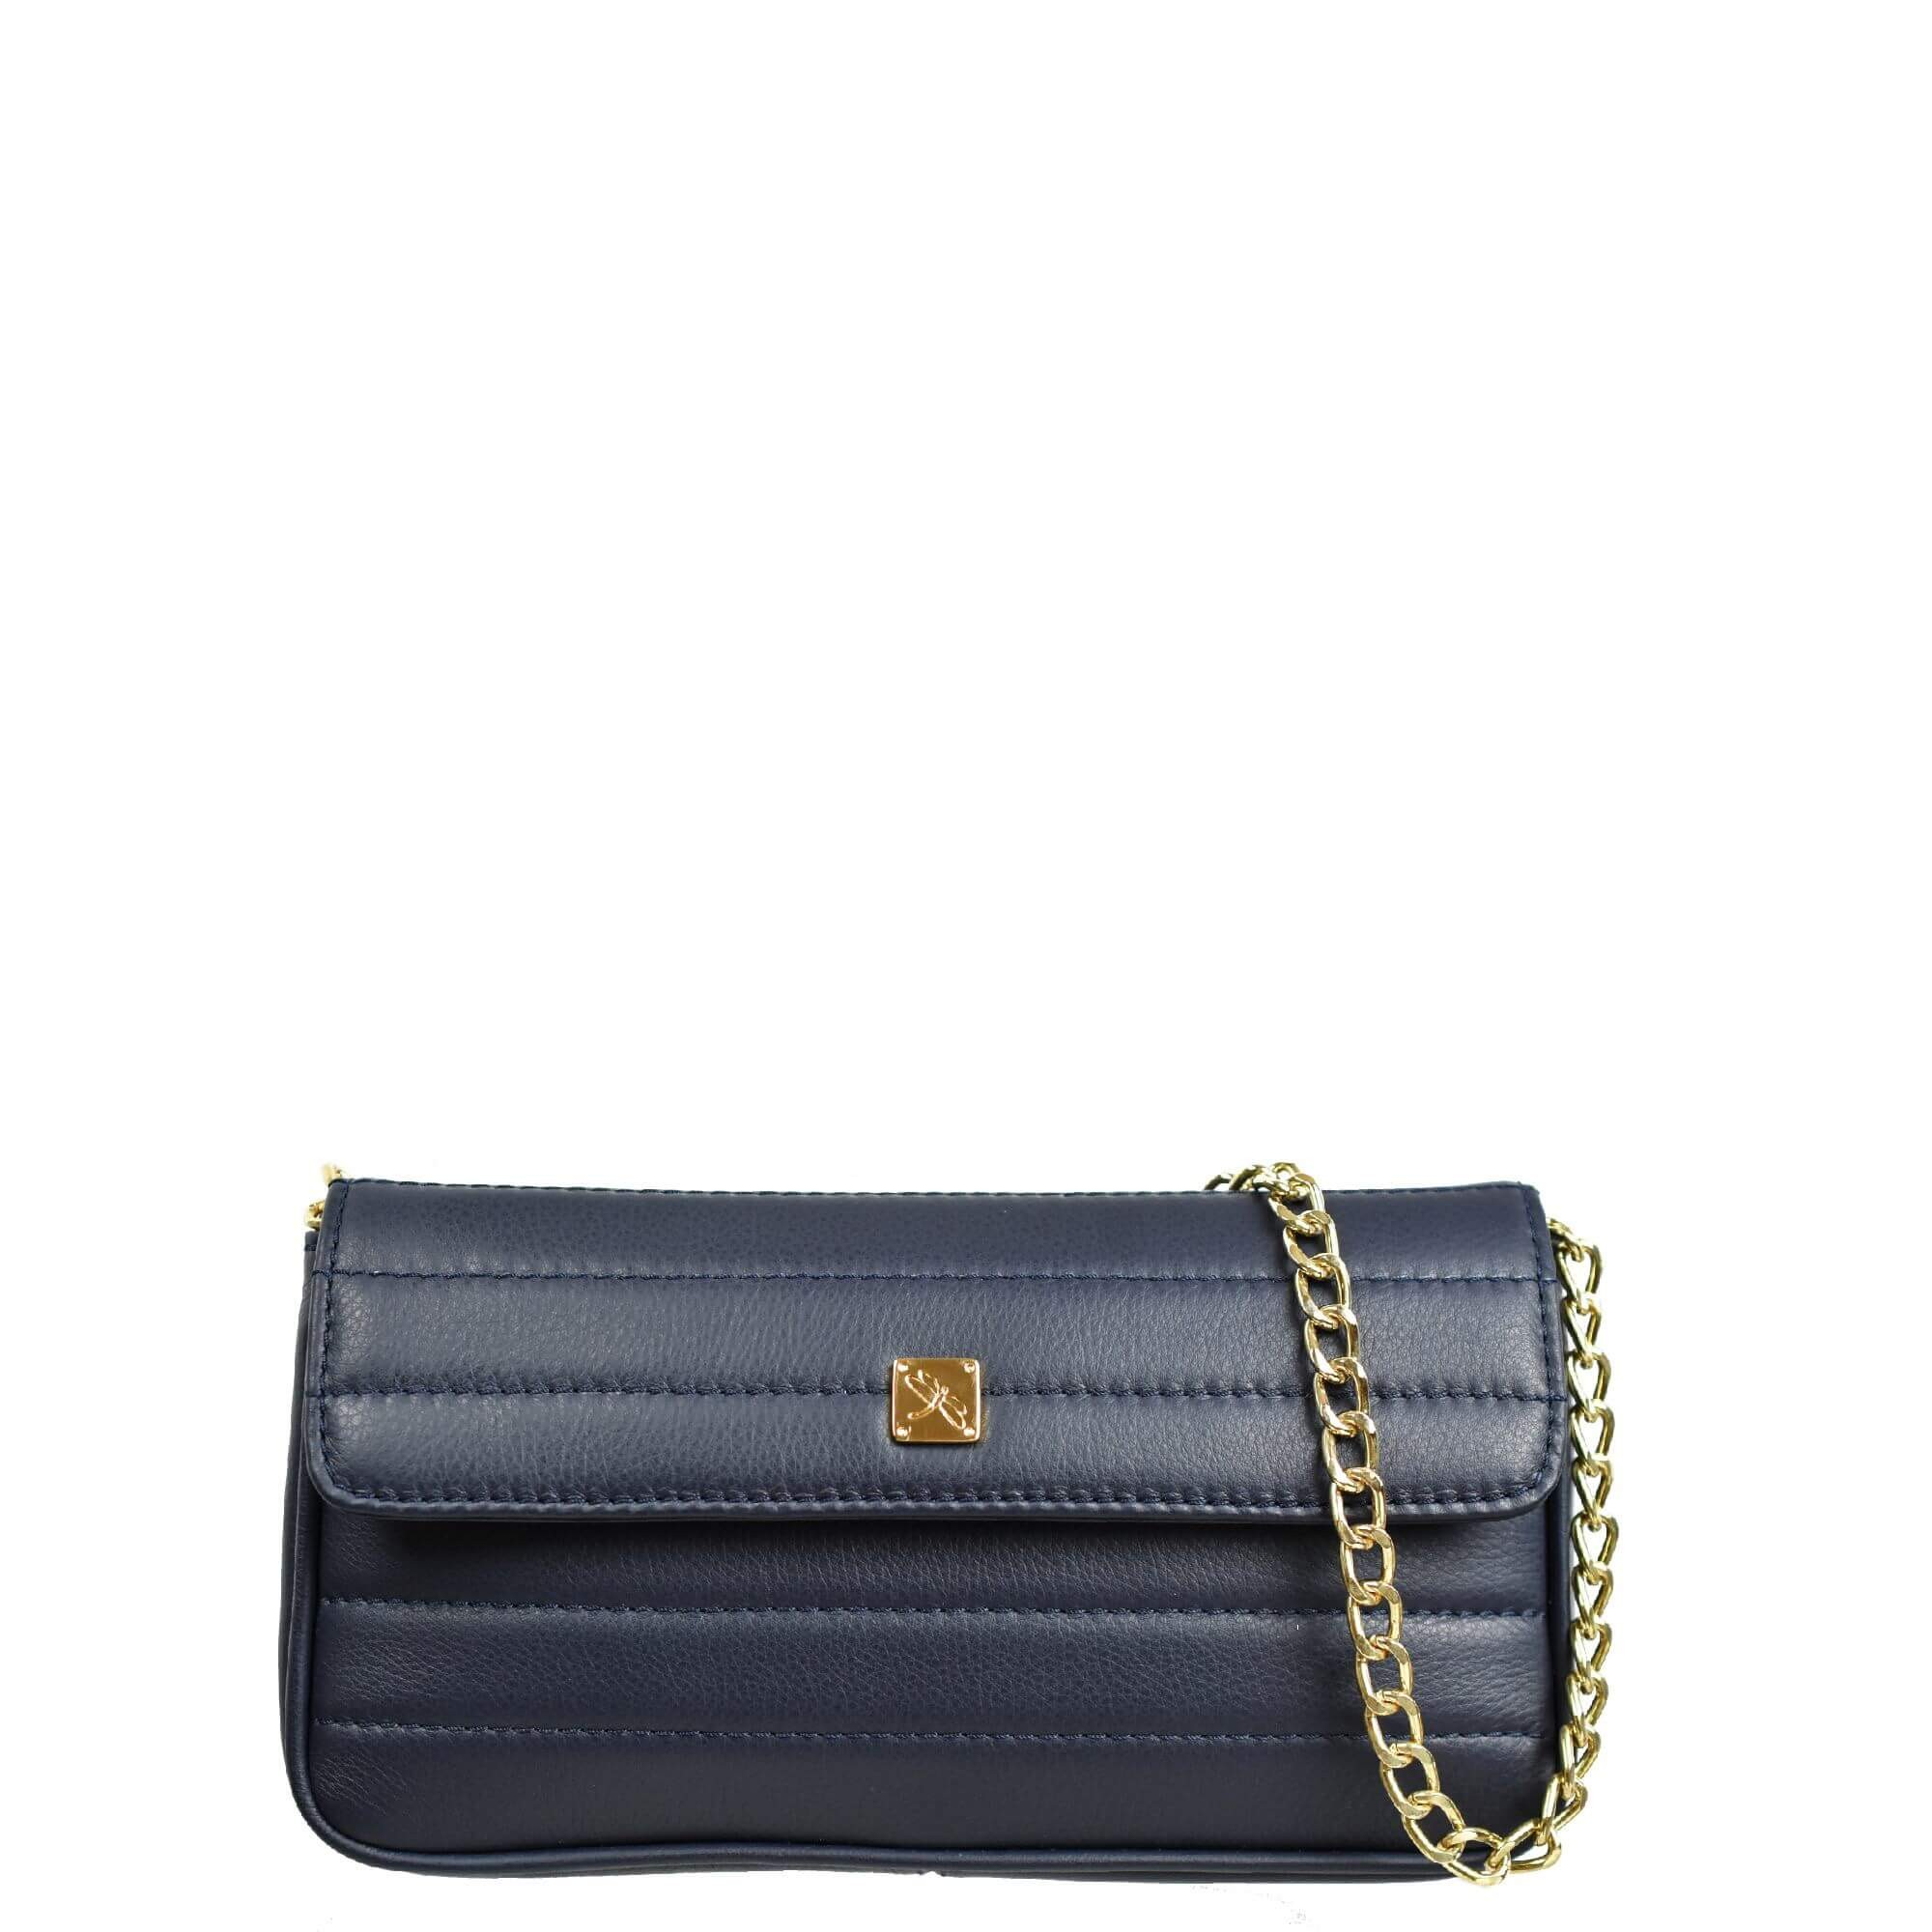 Navy Blue Mini Crossbody with Chain. Viena S